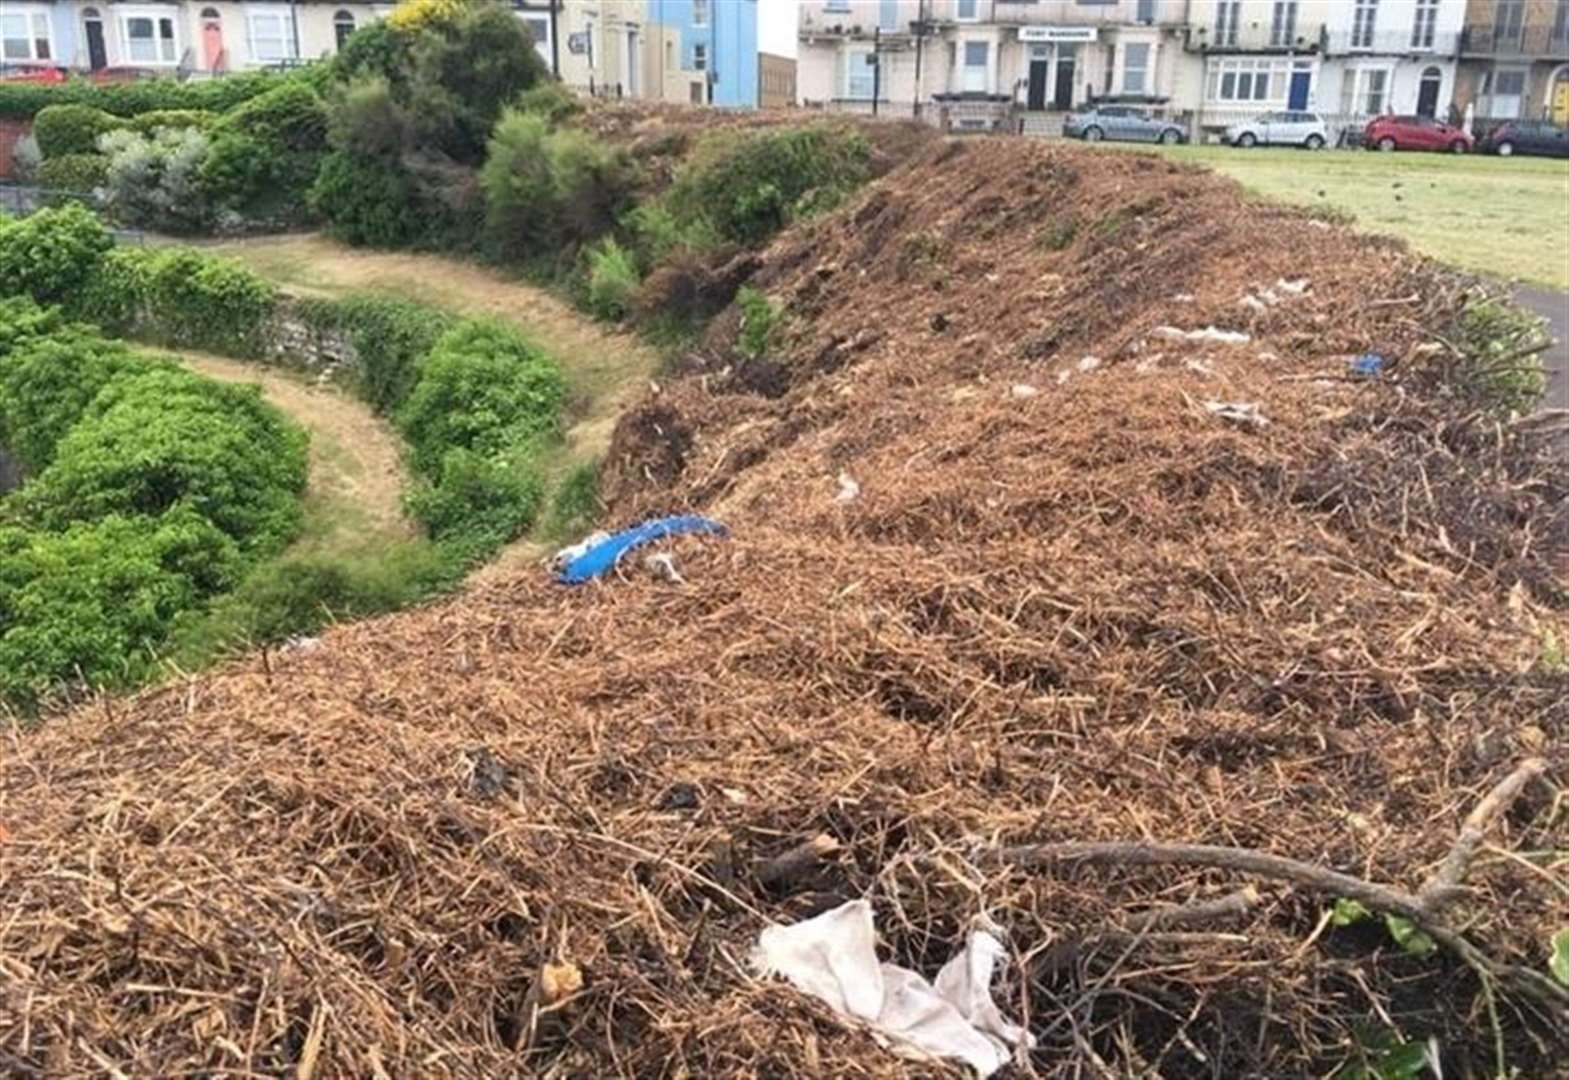 Review after hedge cutting caused 'carnage'